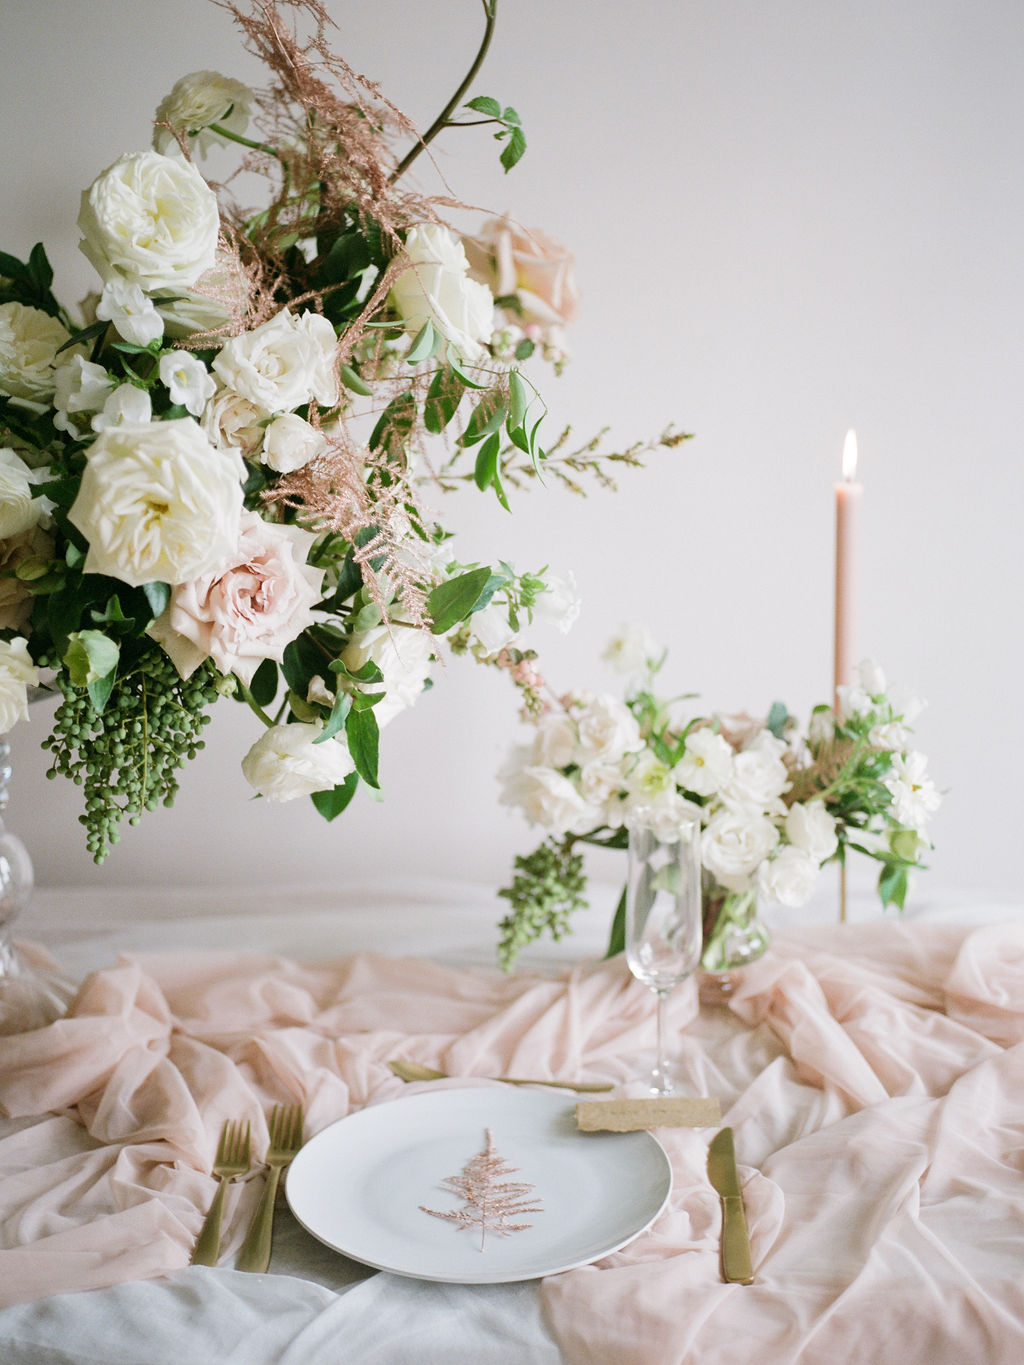 Maxit-Flower-Design-Christine-Gosch-Winter-Wedding.jpg